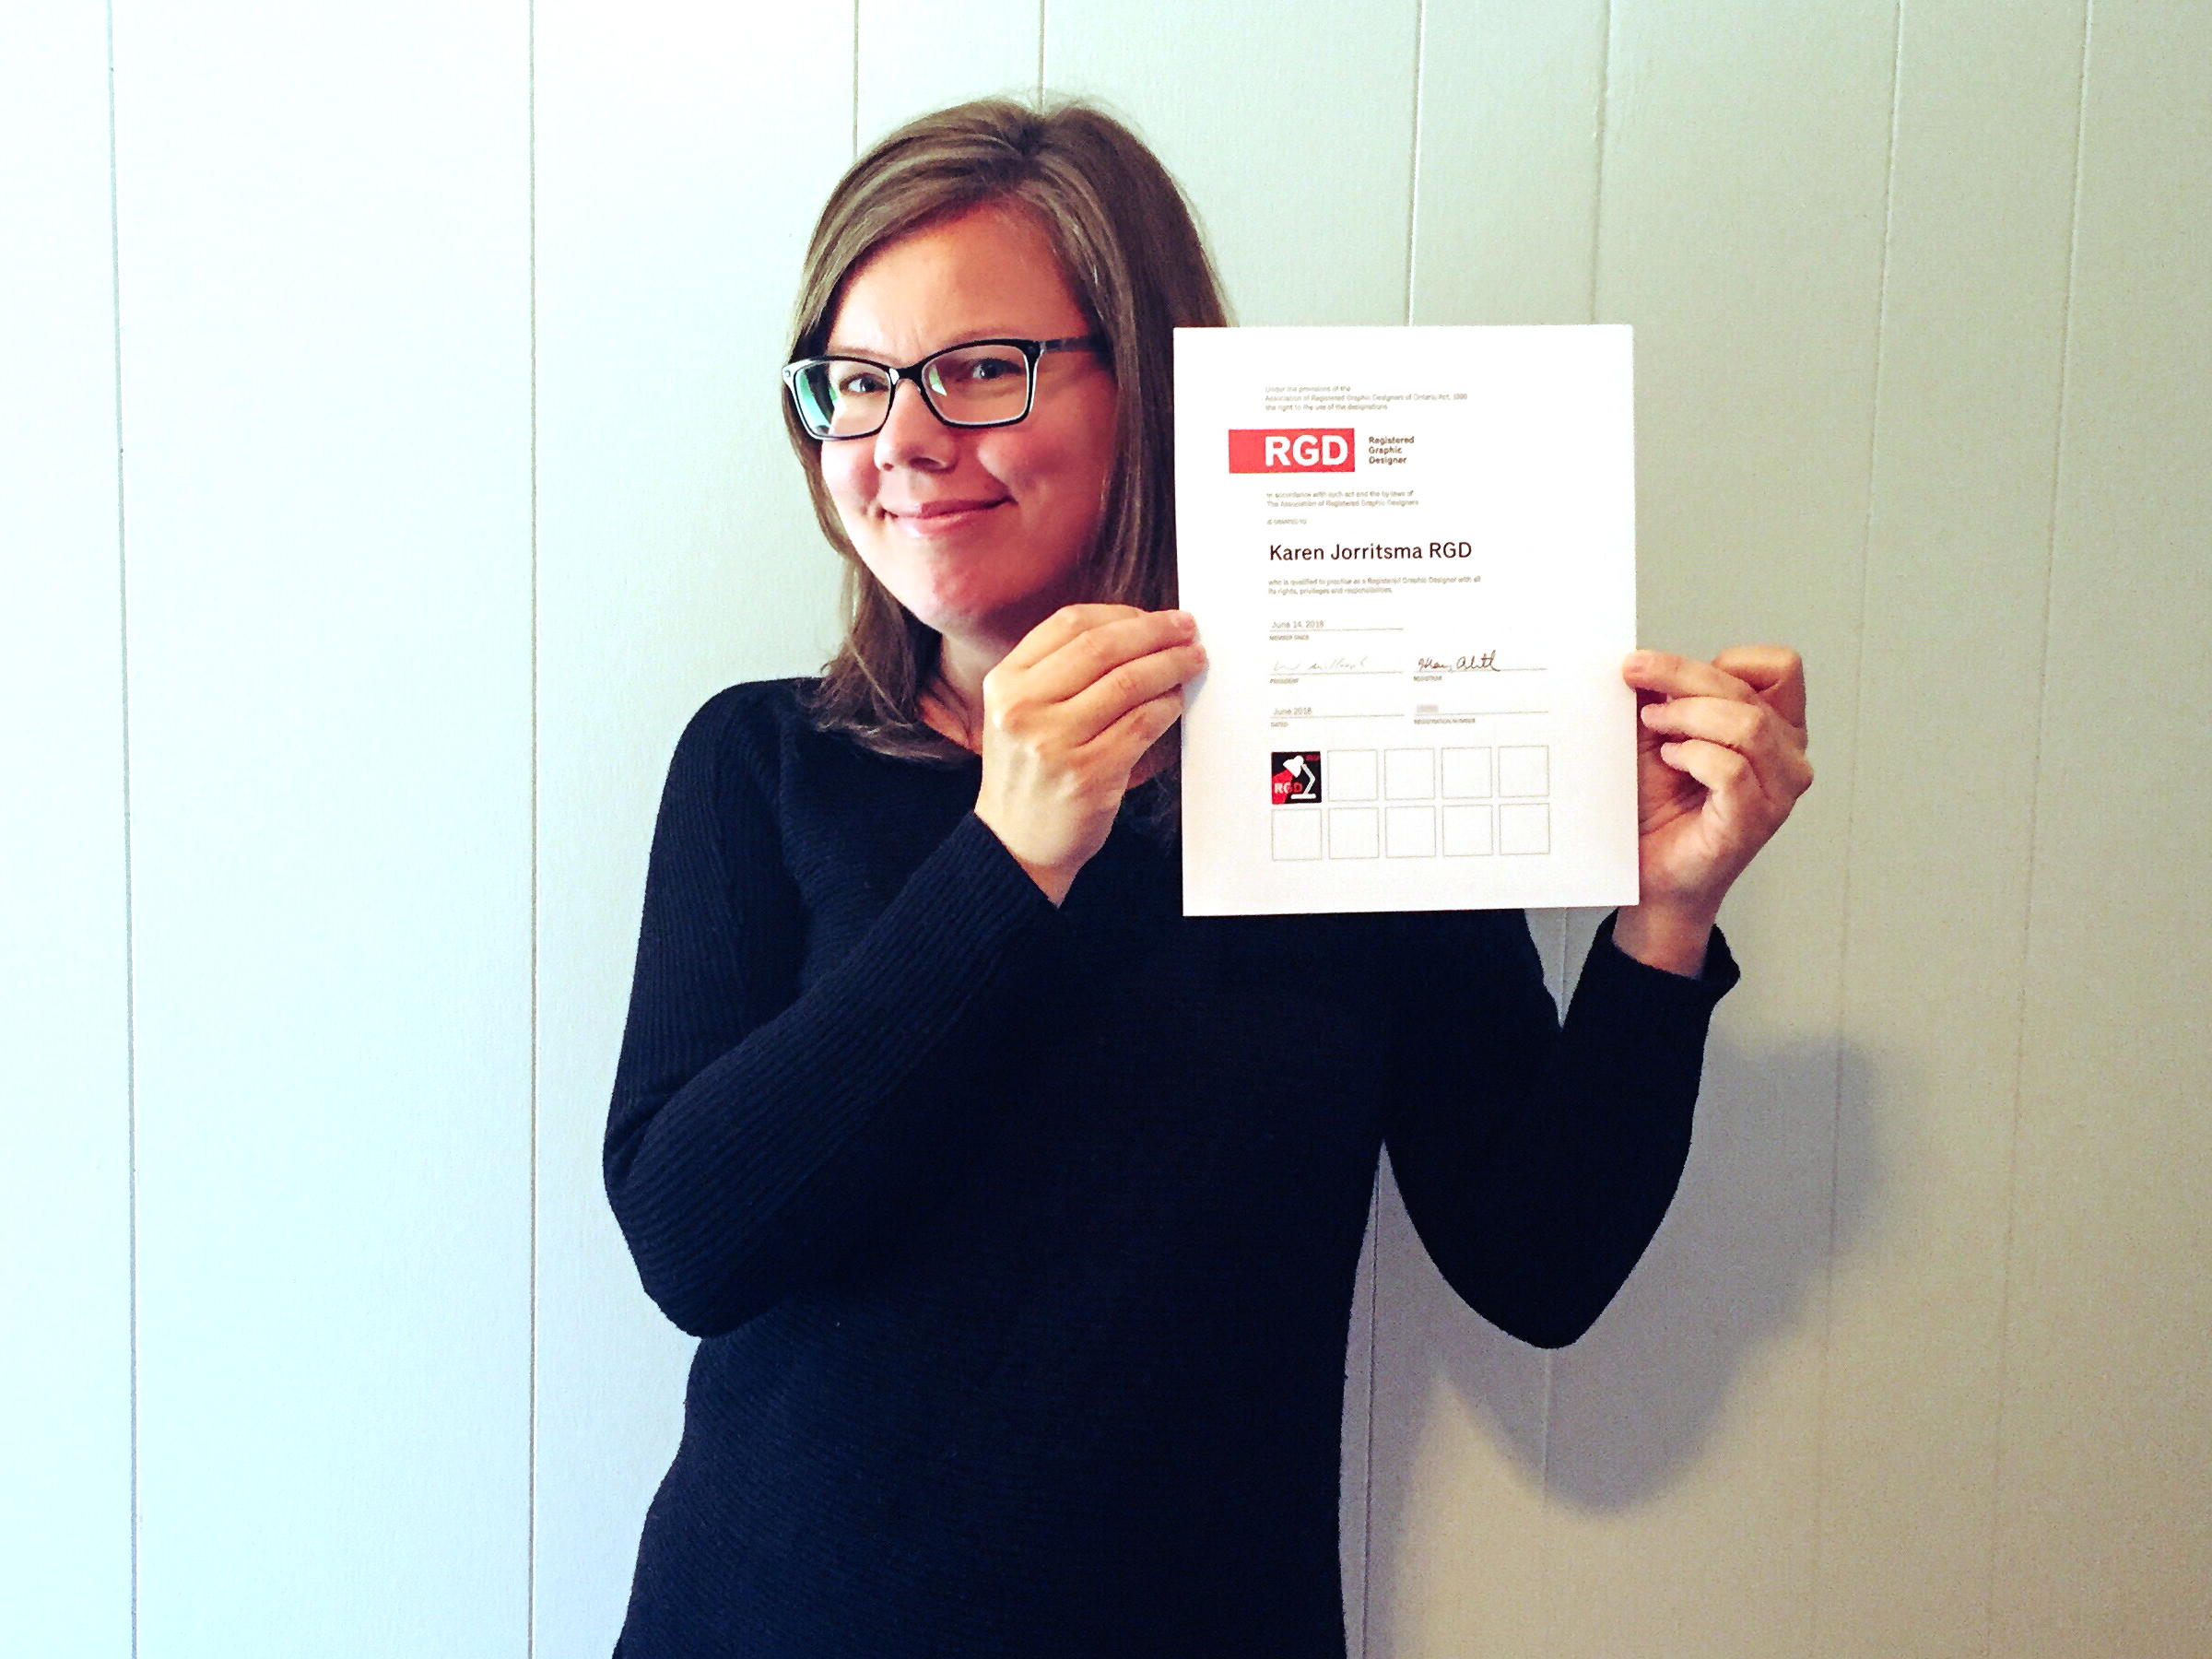 Karen Jorritsma RGD - I received my official certification in June 2018! I am proud to be a part of this forward-thinking organization, and willingly contribute to this supportive community of inspiring, talented professionals. I look forward to passing on these benefits to my clients!